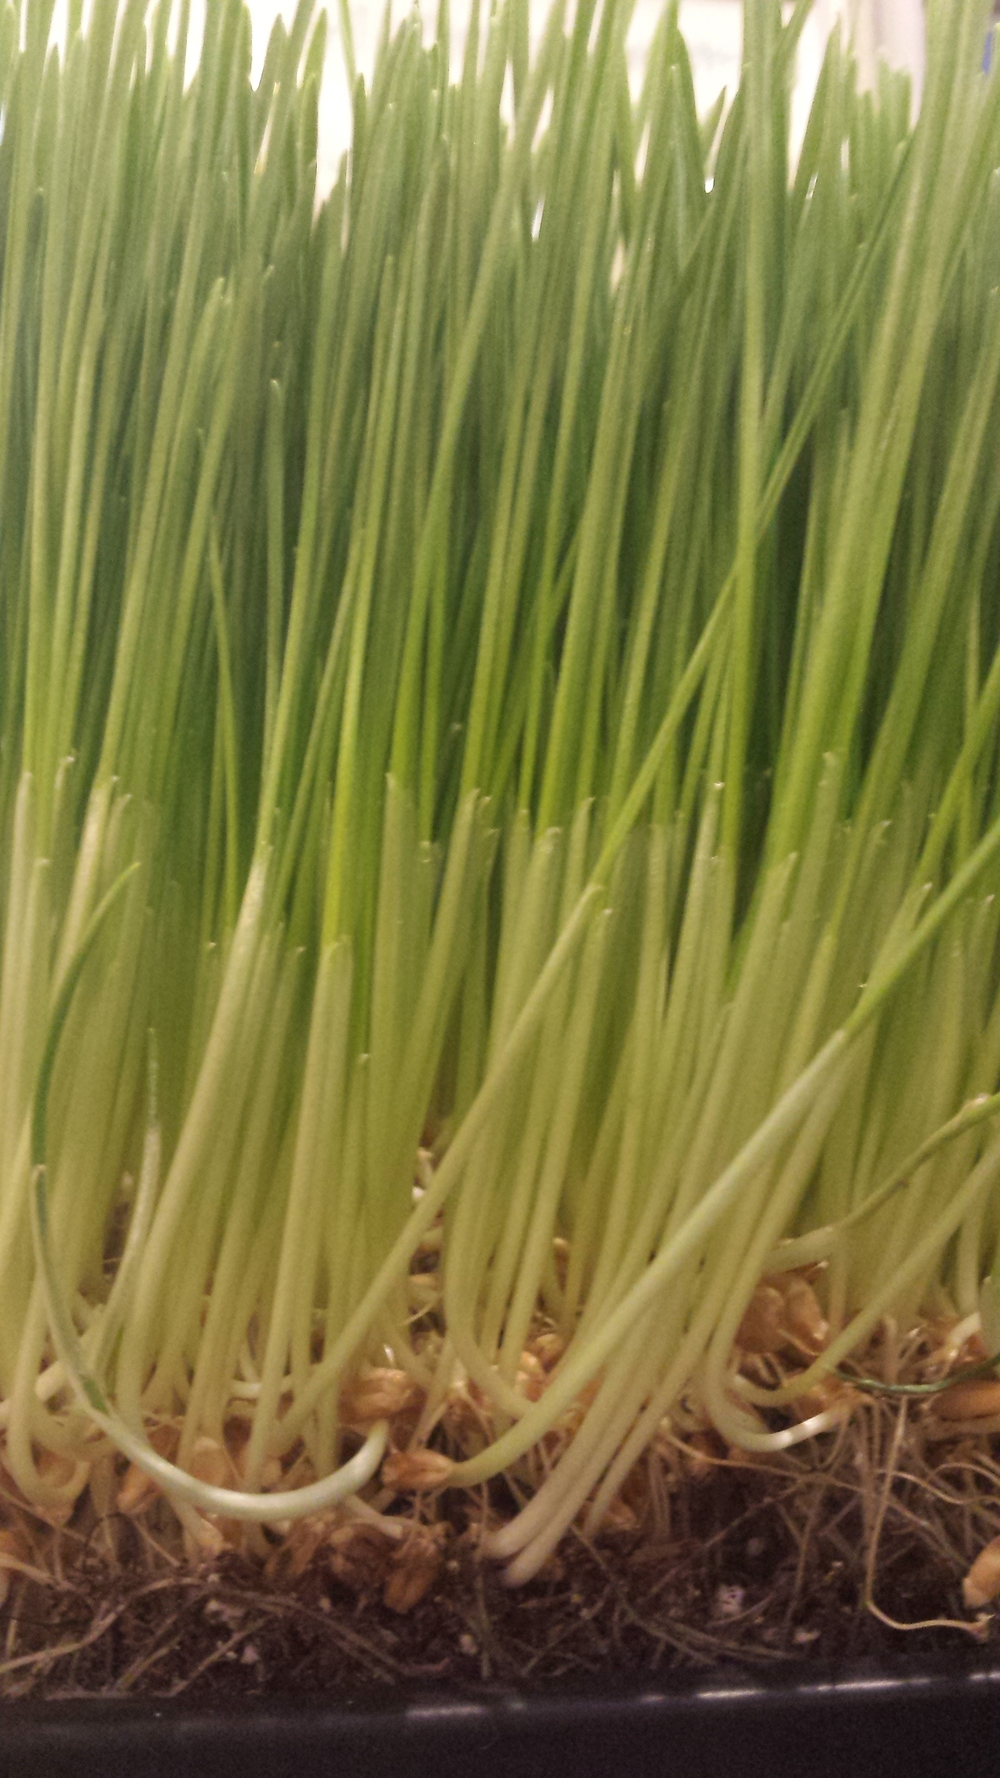 """Wheatgrass is the young grass of the common wheat plant Triticum aestivum Linn..."""